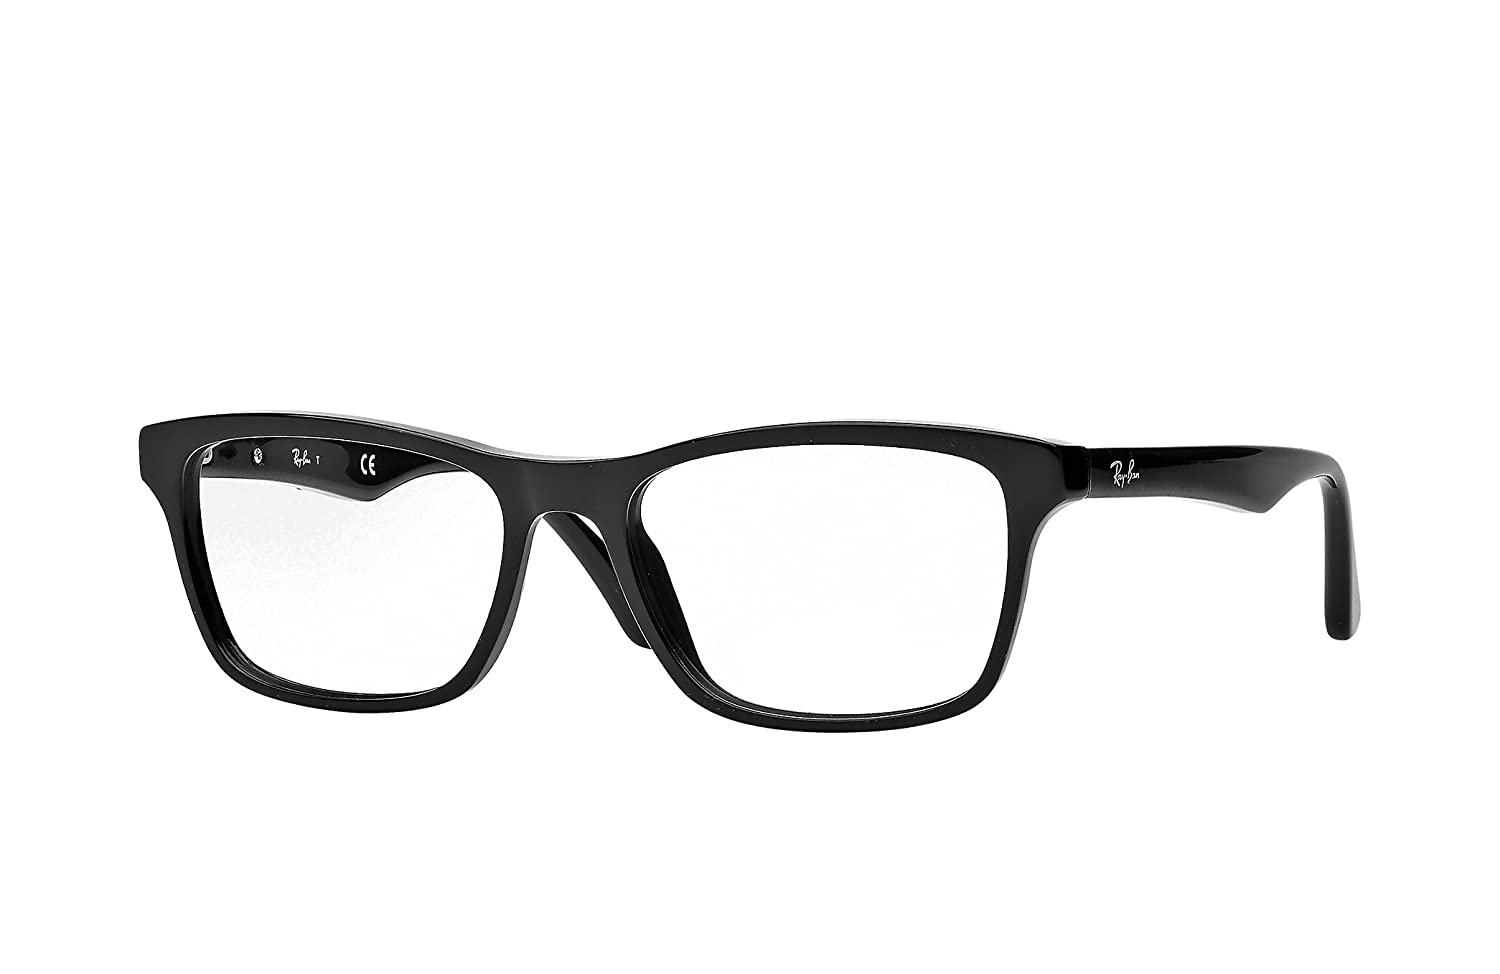 0f84a317a1 Amazon.com  RAY BAN 5279 SIZE 53 READING GLASSES +1.75  Health   Personal  Care